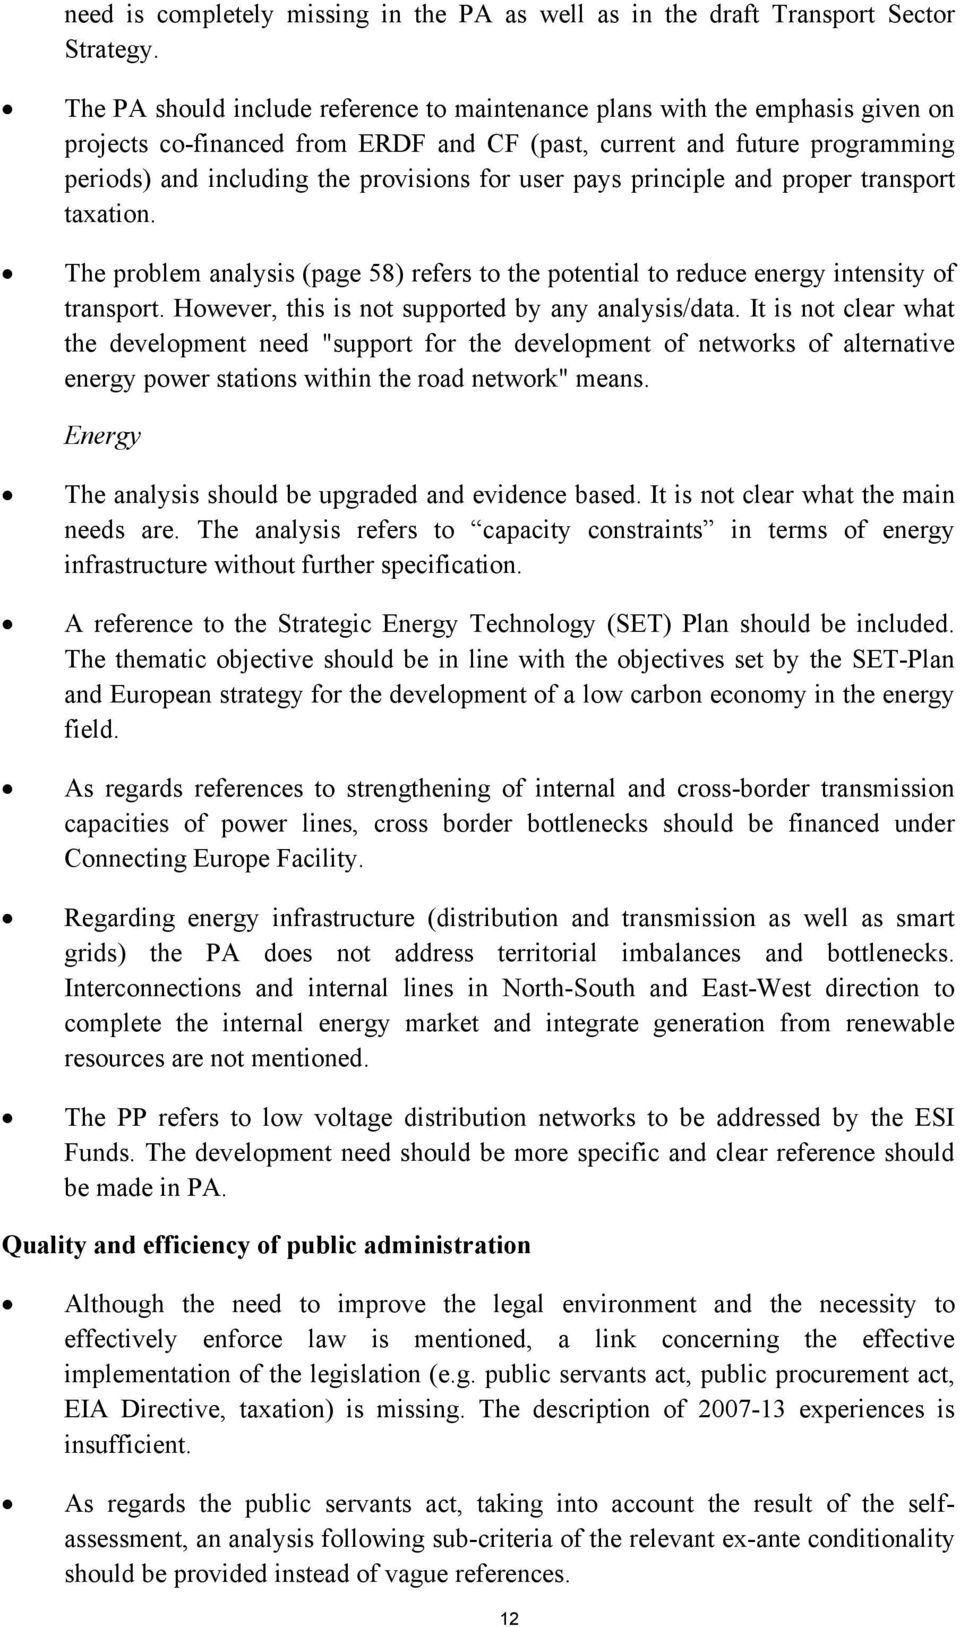 user pays principle and proper transport taxation. The problem analysis (page 58) refers to the potential to reduce energy intensity of transport. However, this is not supported by any analysis/data.